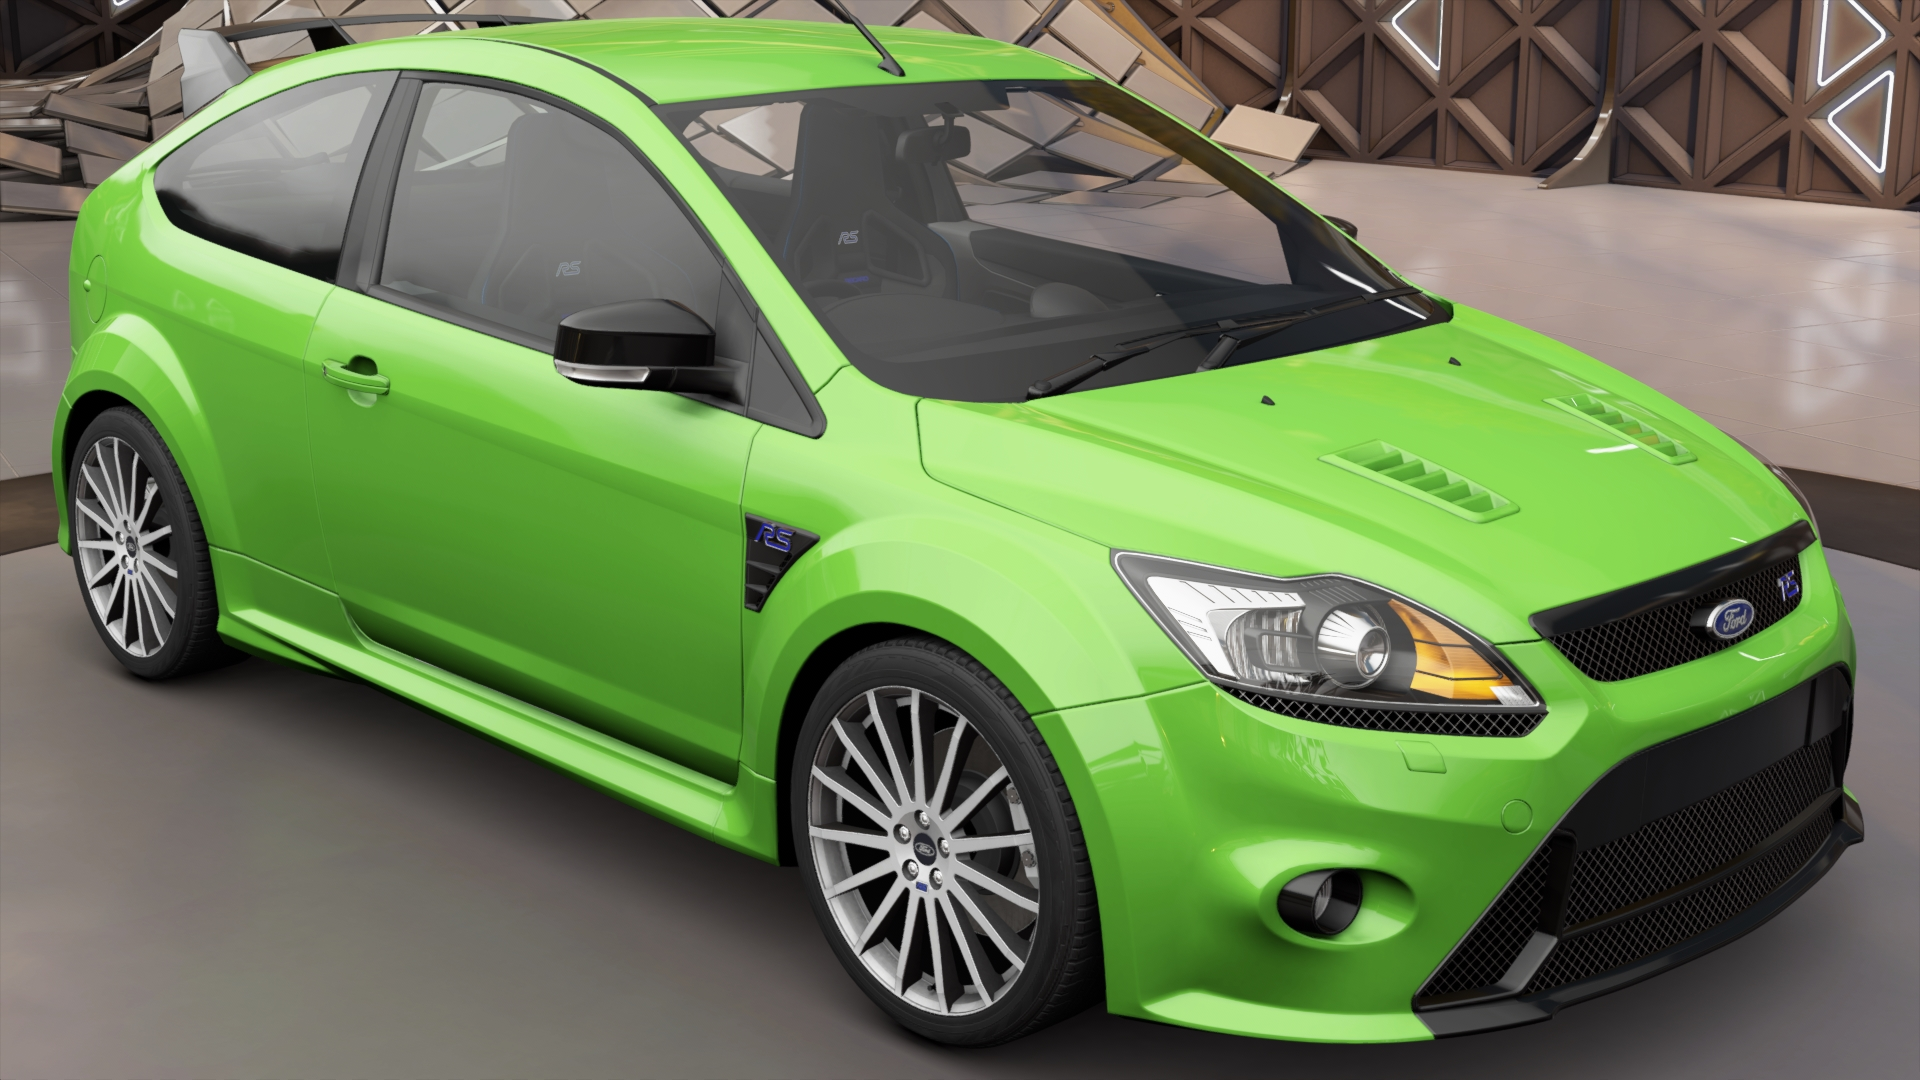 ford focus rs 2009 forza motorsport wiki fandom. Black Bedroom Furniture Sets. Home Design Ideas